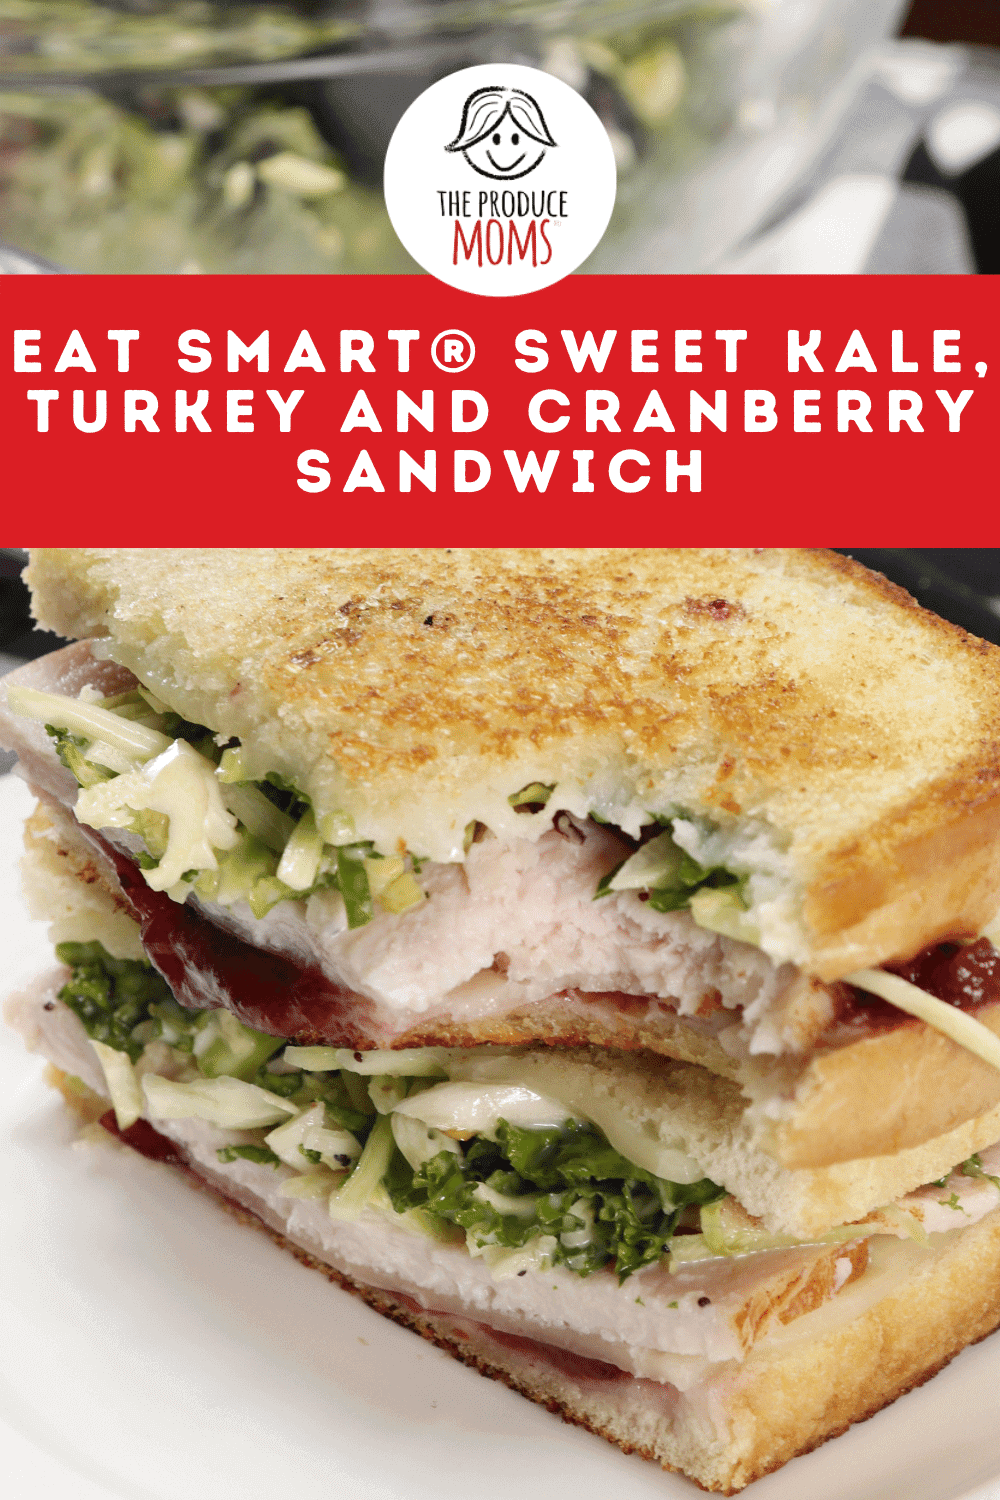 Eat Smart® Sweet Kale, Turkey and Cranberry Sandwich Instagram Card